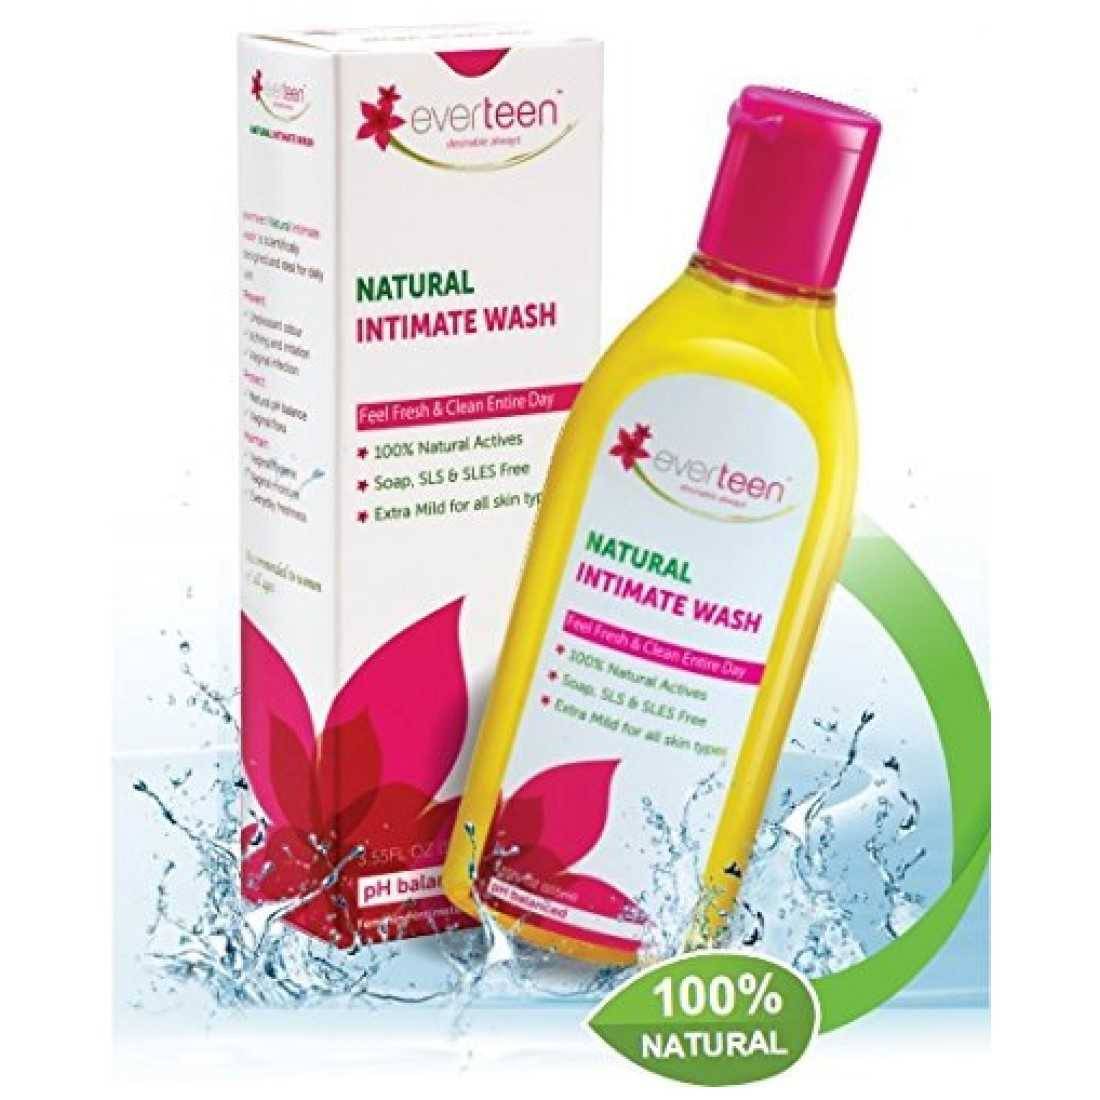 everteen Natural Intimate Wash for Women - 1 Pack (105ml)